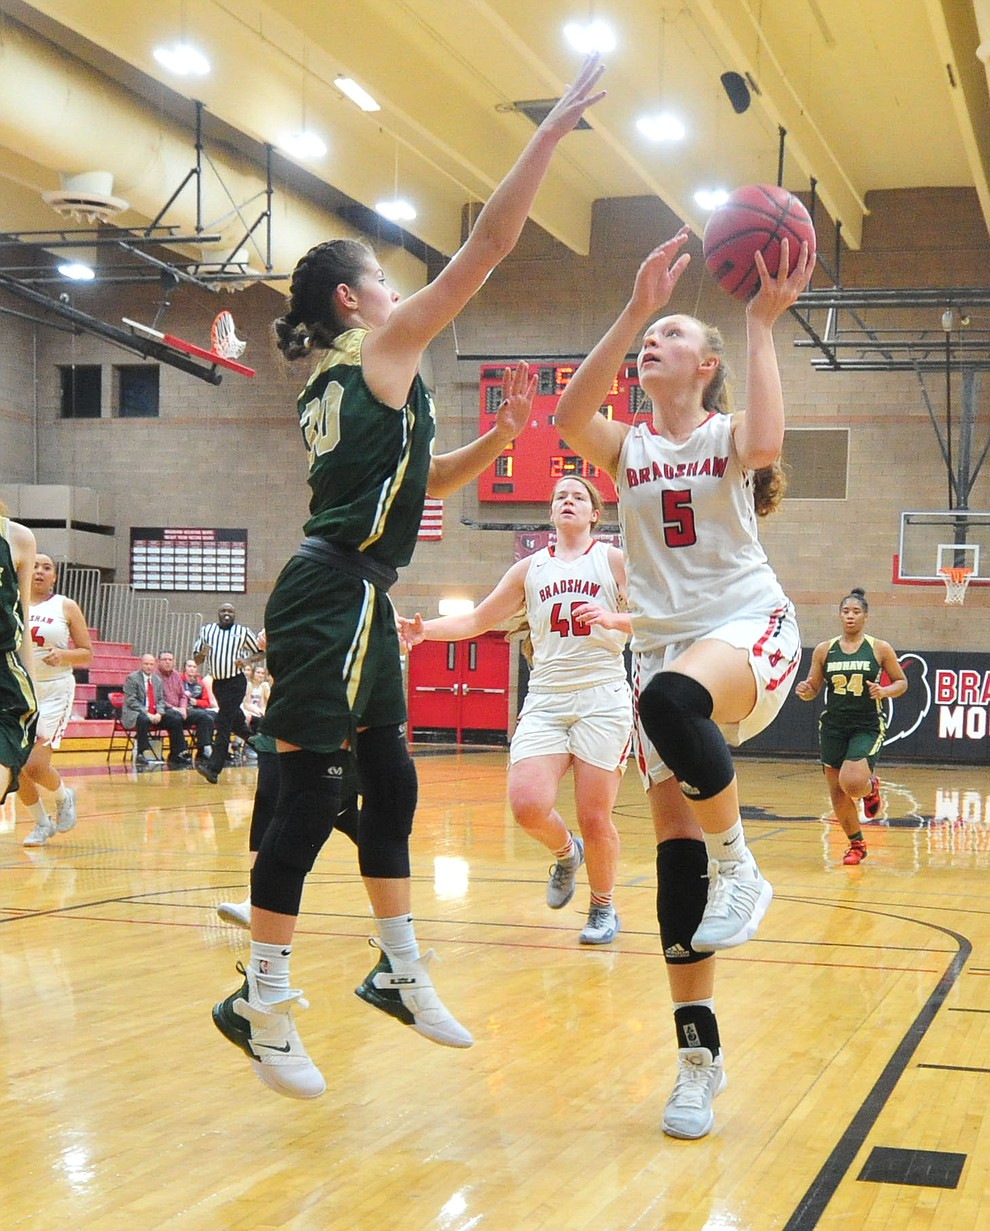 Bradshaw Mountain's Sierra Woolley drives through the lane as the Bears host the Mohave Thunderbirds in a basketball matchup Friday night in Prescott Valley. (Les Stukenberg/Courier).